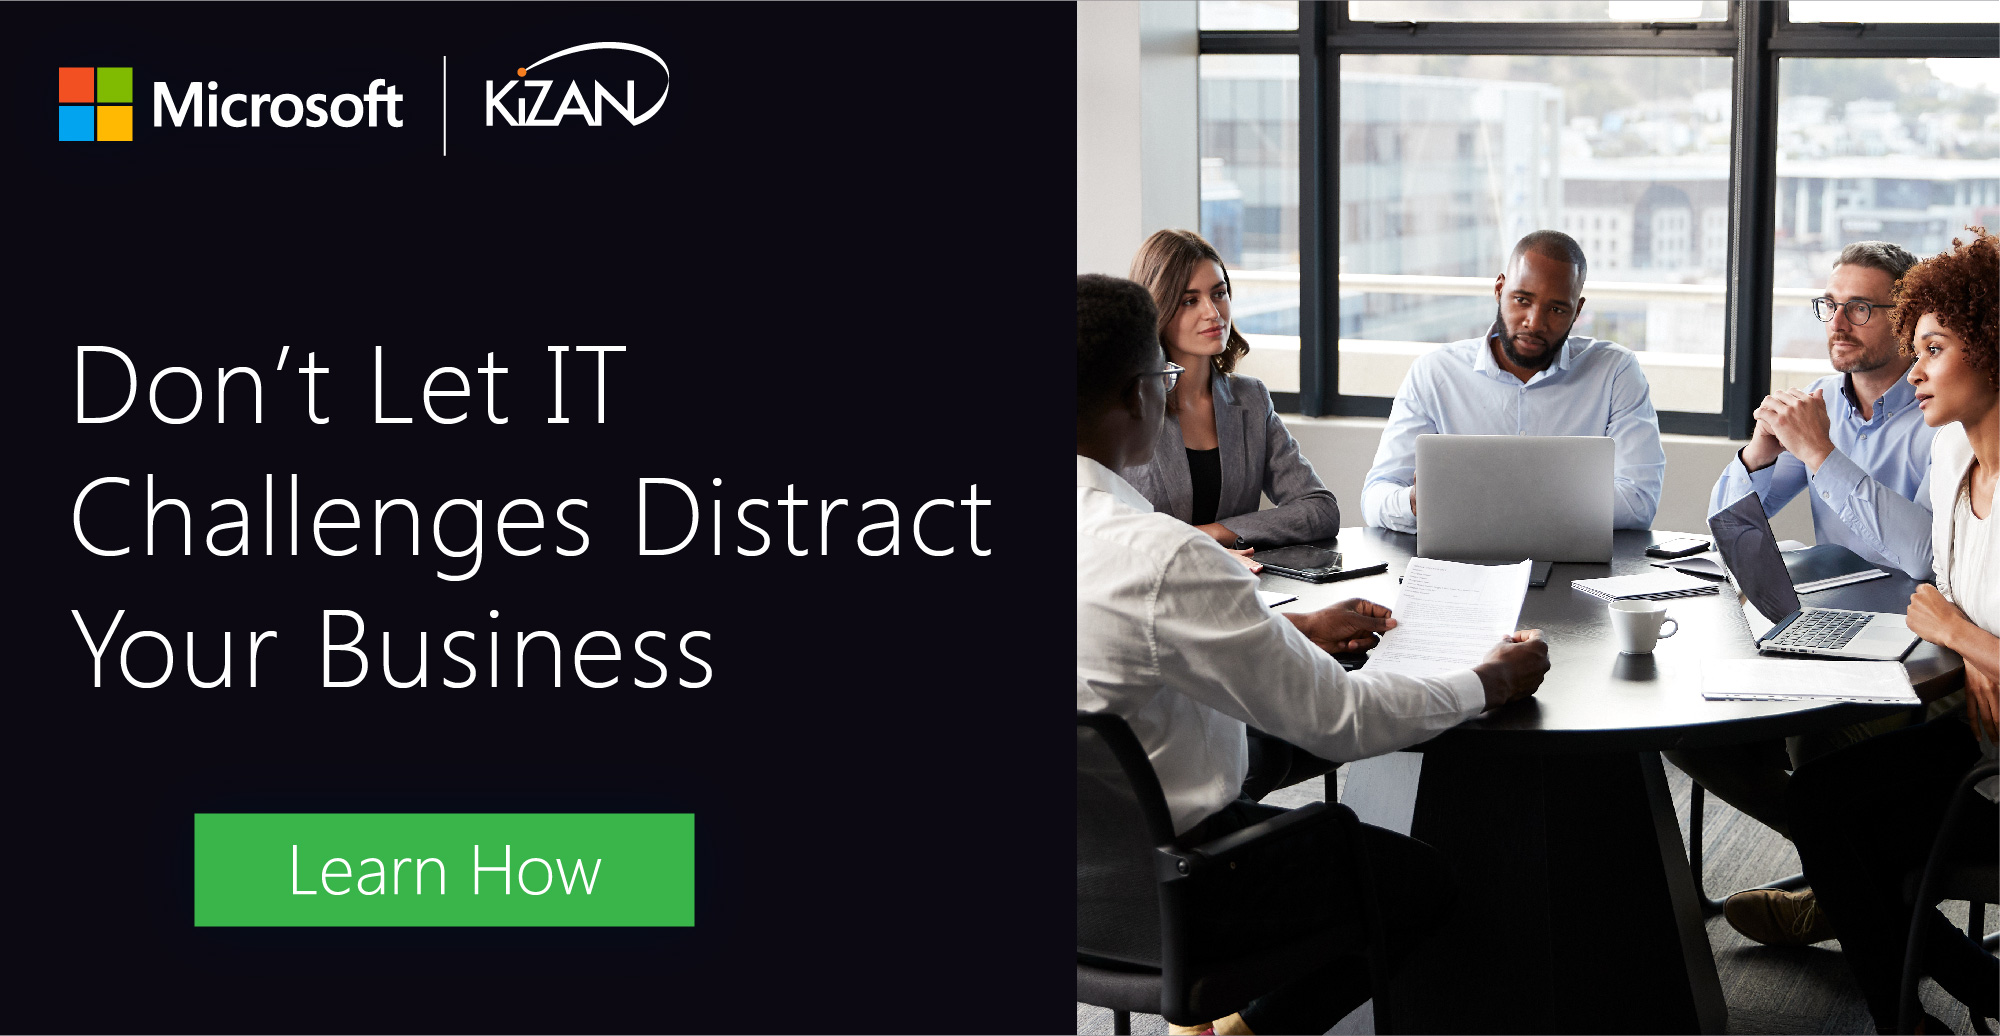 Don't Let IT Challenges Distract Your Business